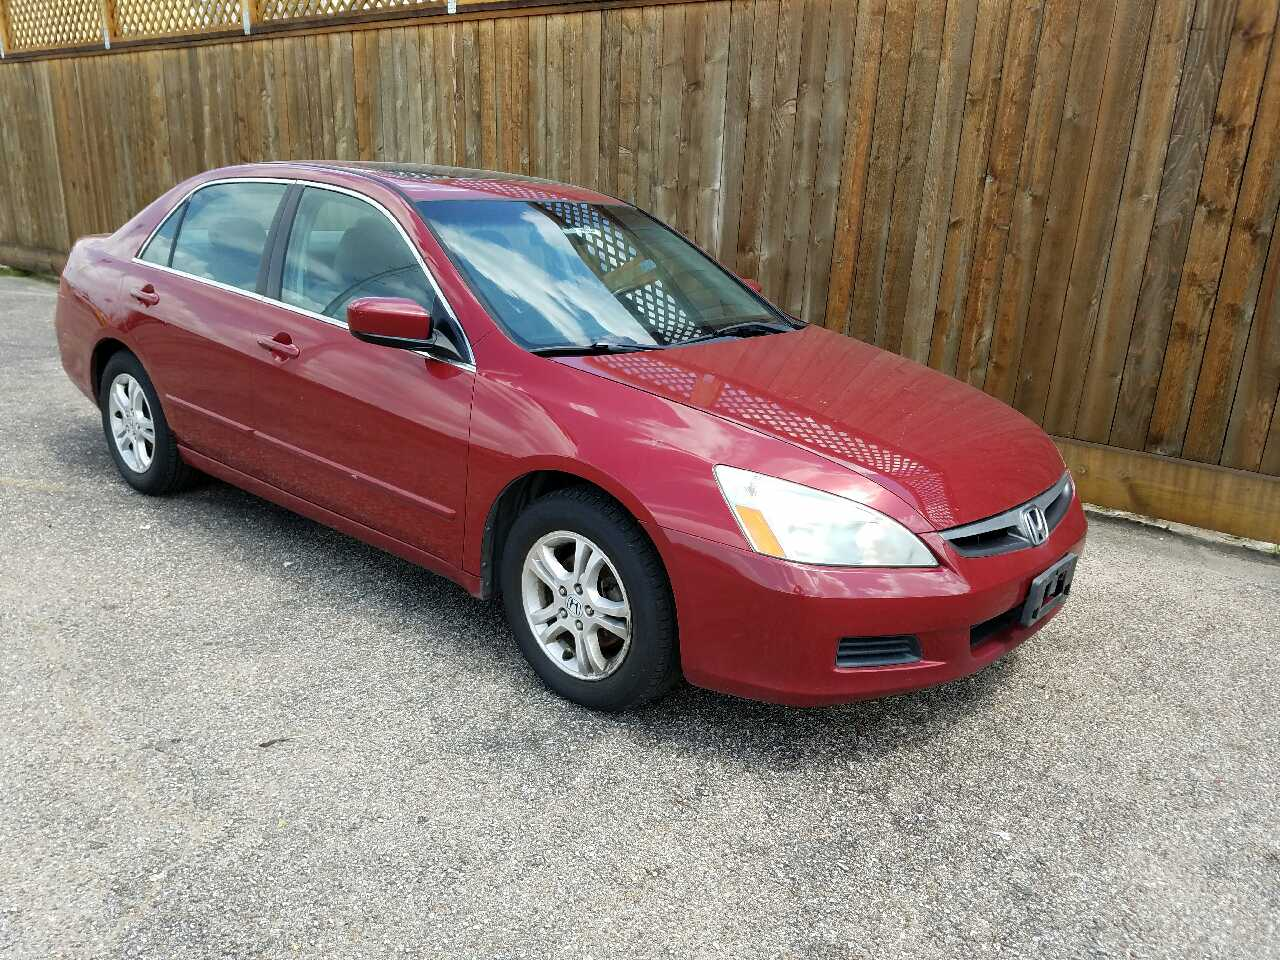 letgo 2007 honda accord in south houston tx. Black Bedroom Furniture Sets. Home Design Ideas